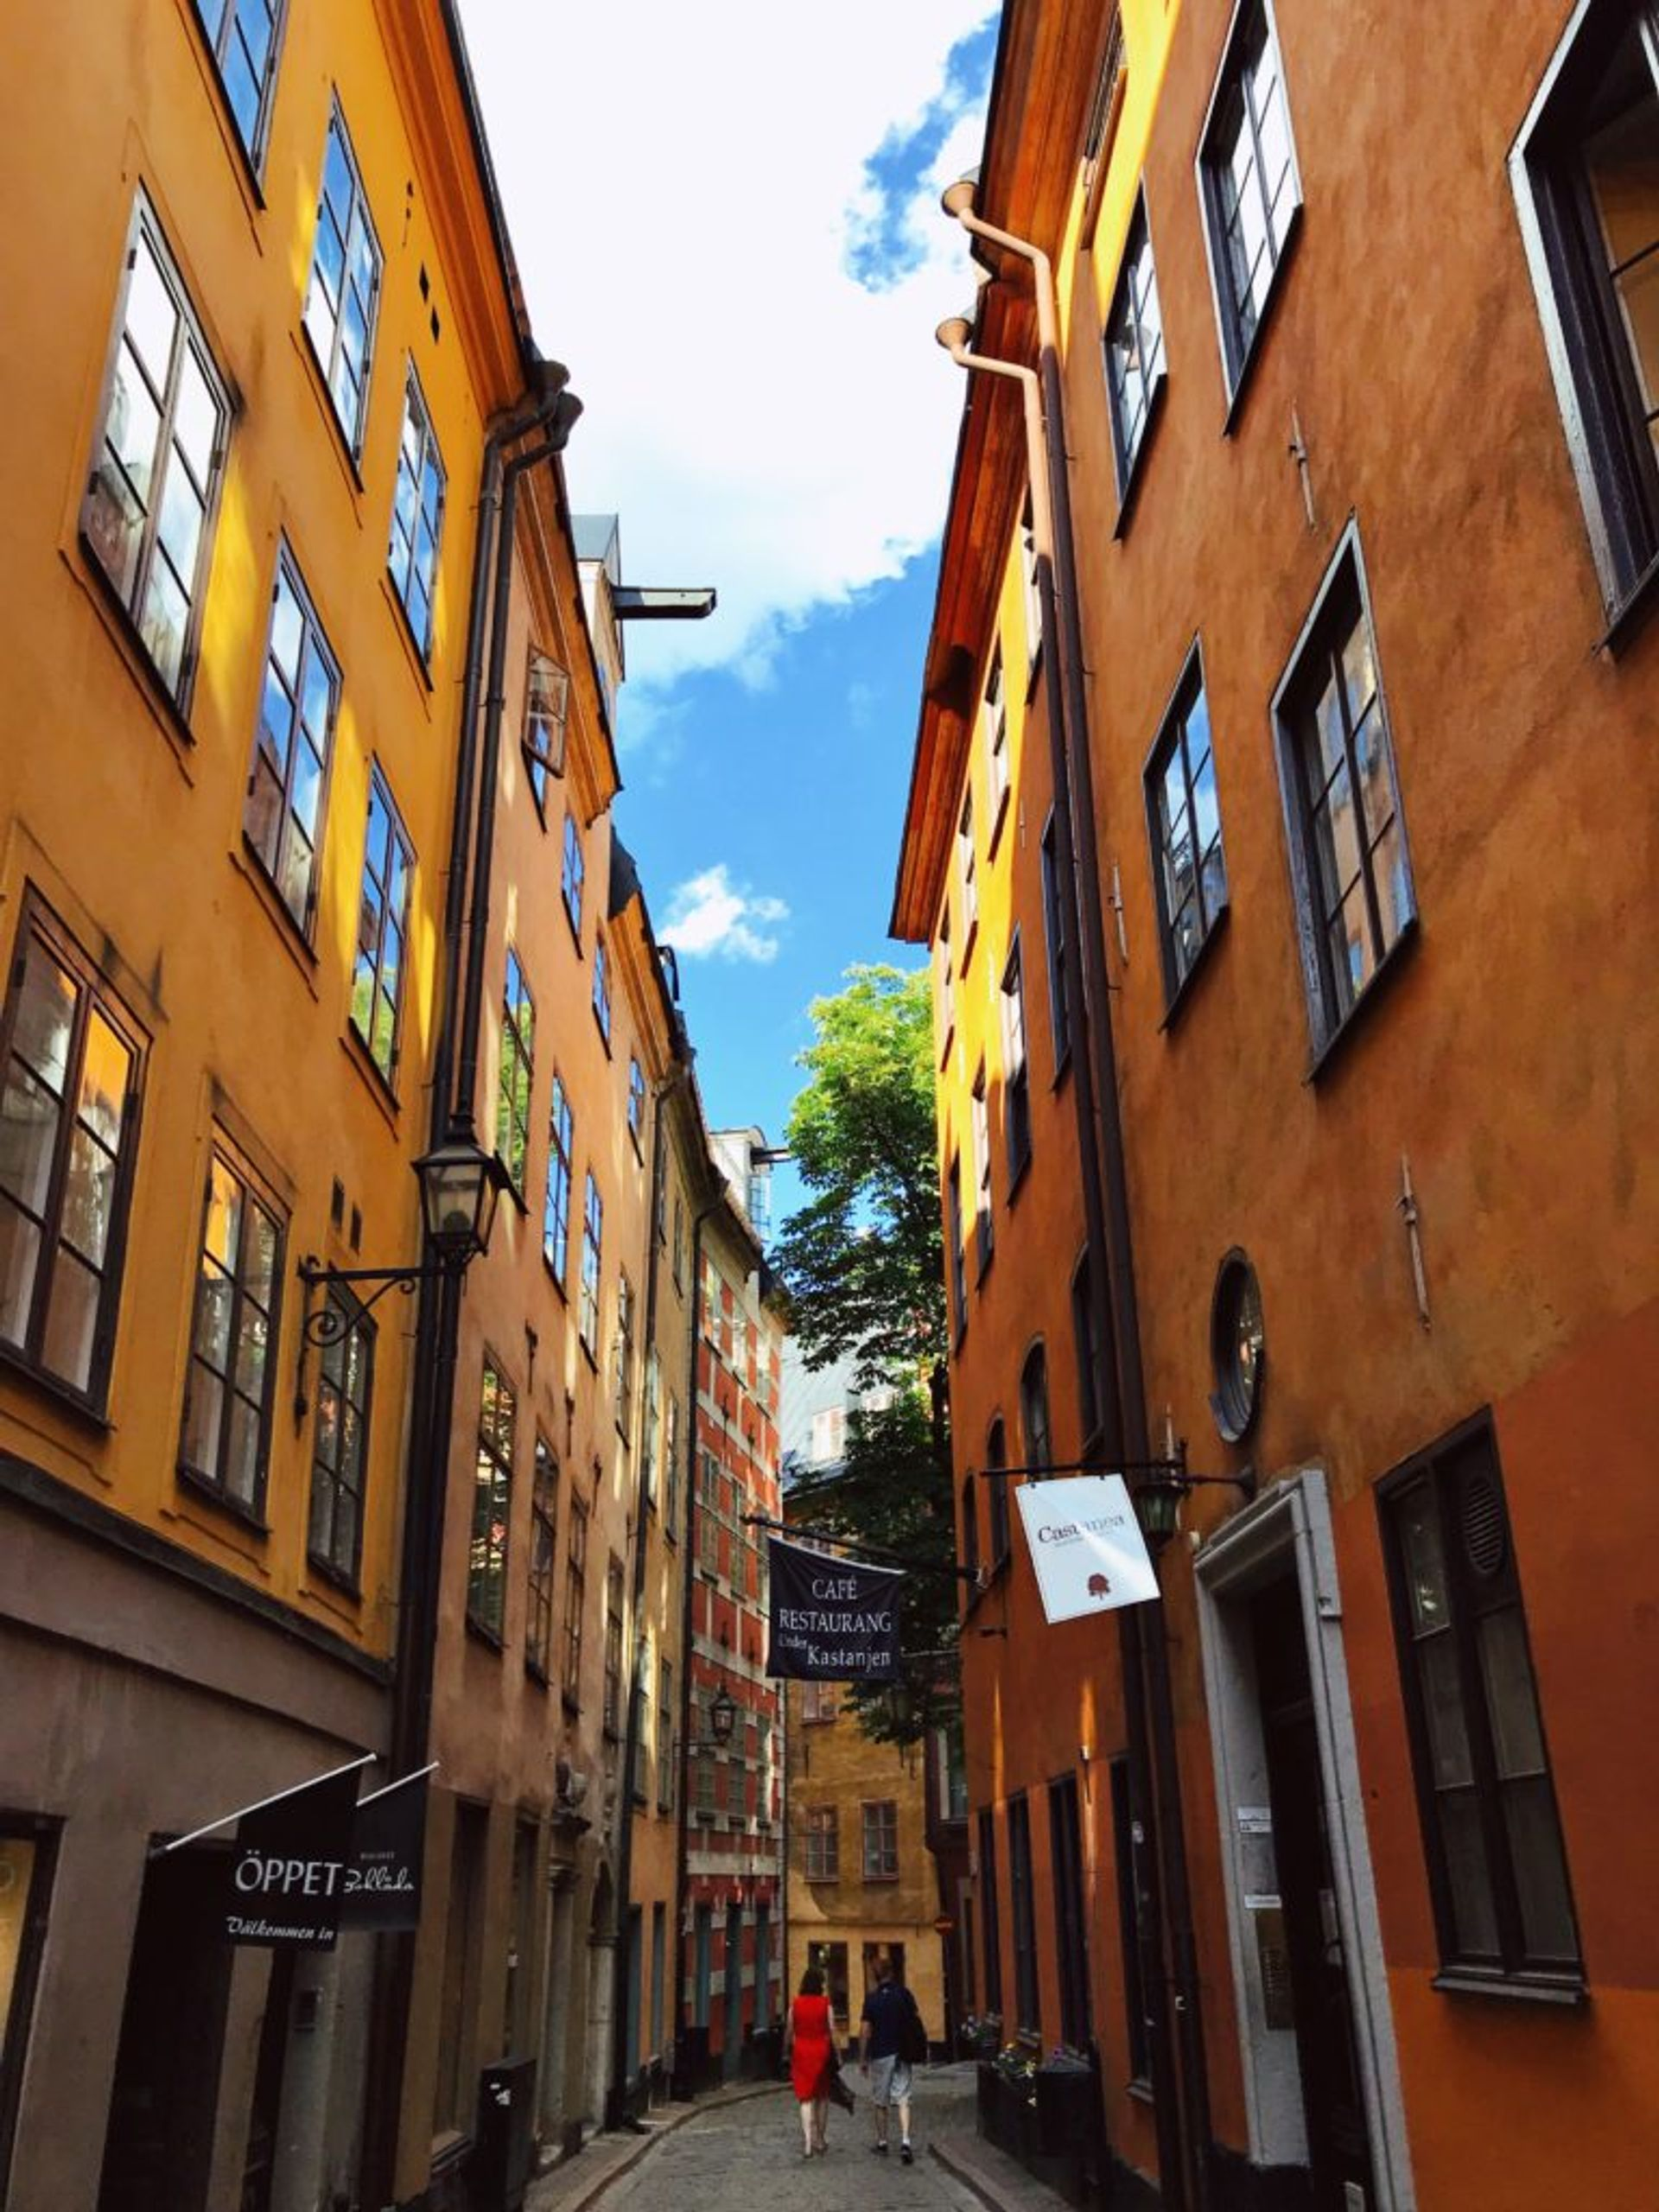 A narrow, cobbled street in Stockholm's Old Town.